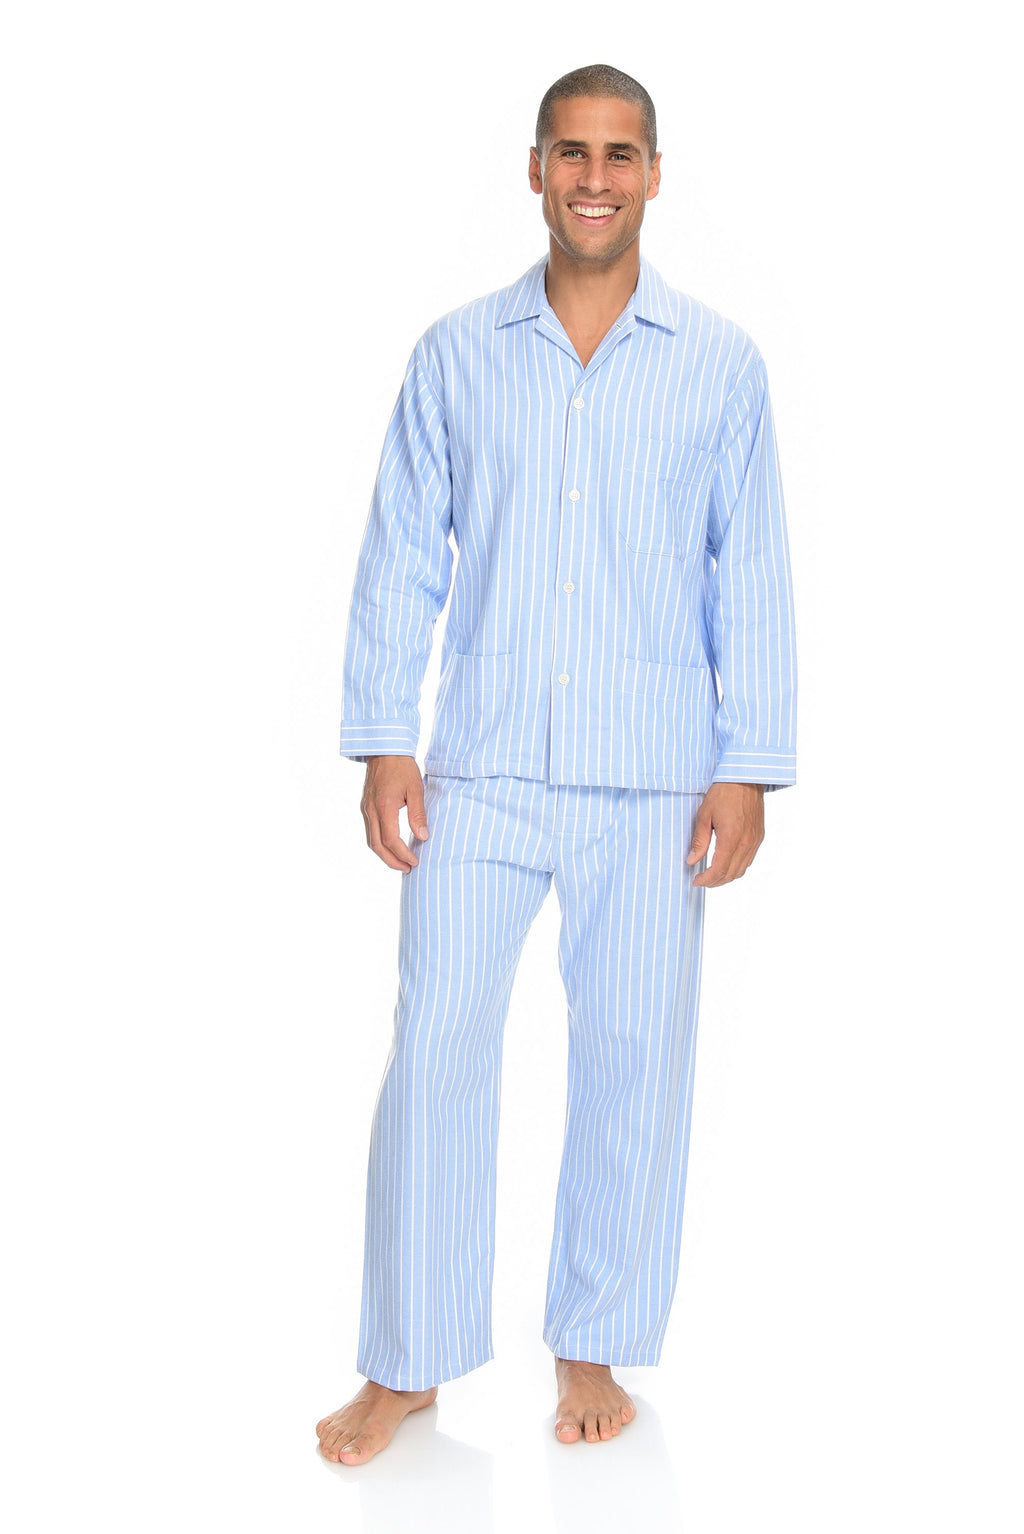 Flannel Pyjamas Men's Classic Stripe